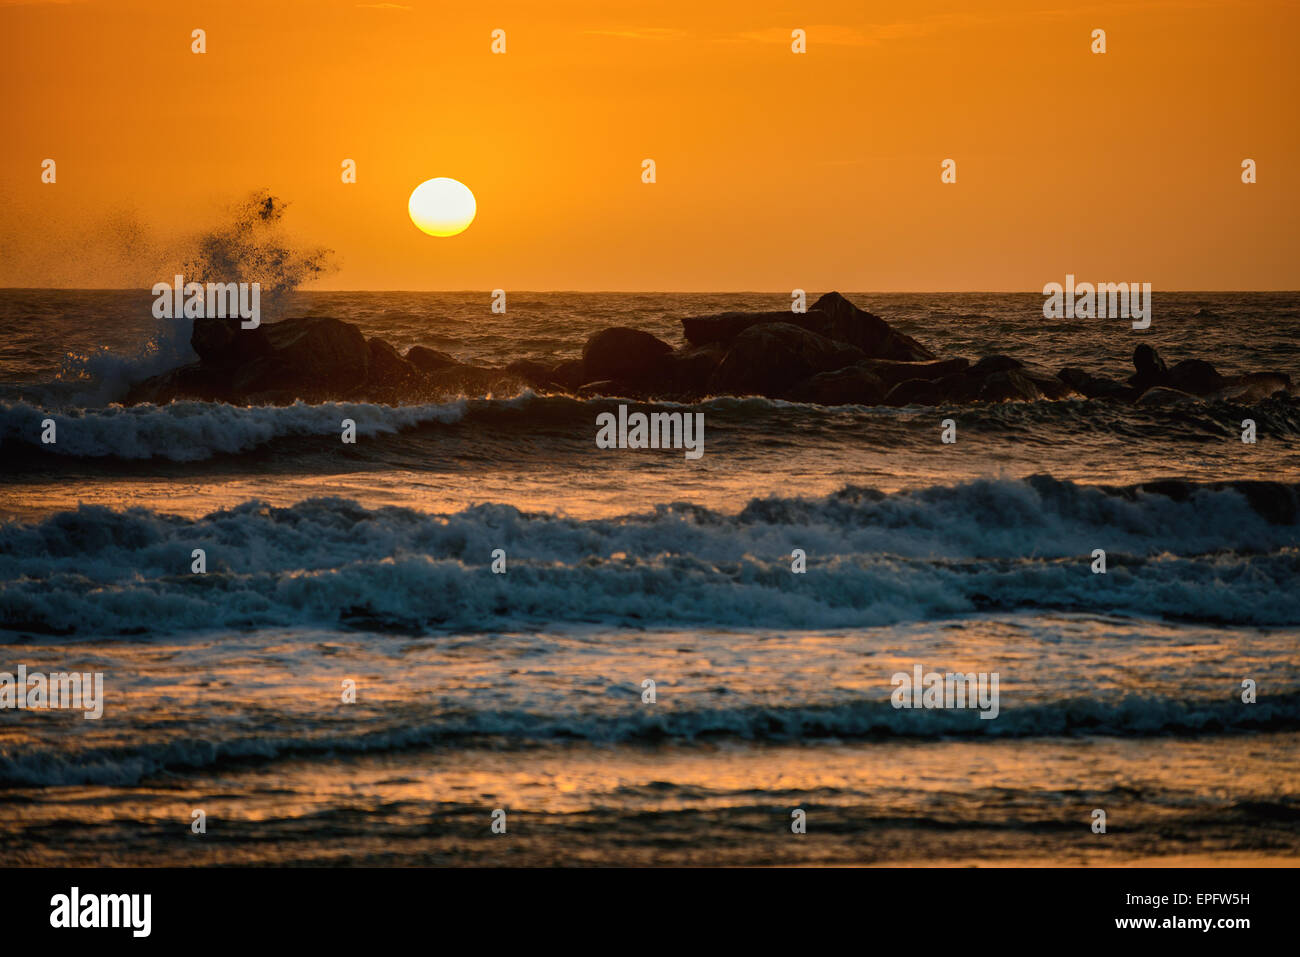 Sunset above the ocean from the rocky beach. Warm tones effect. - Stock Image